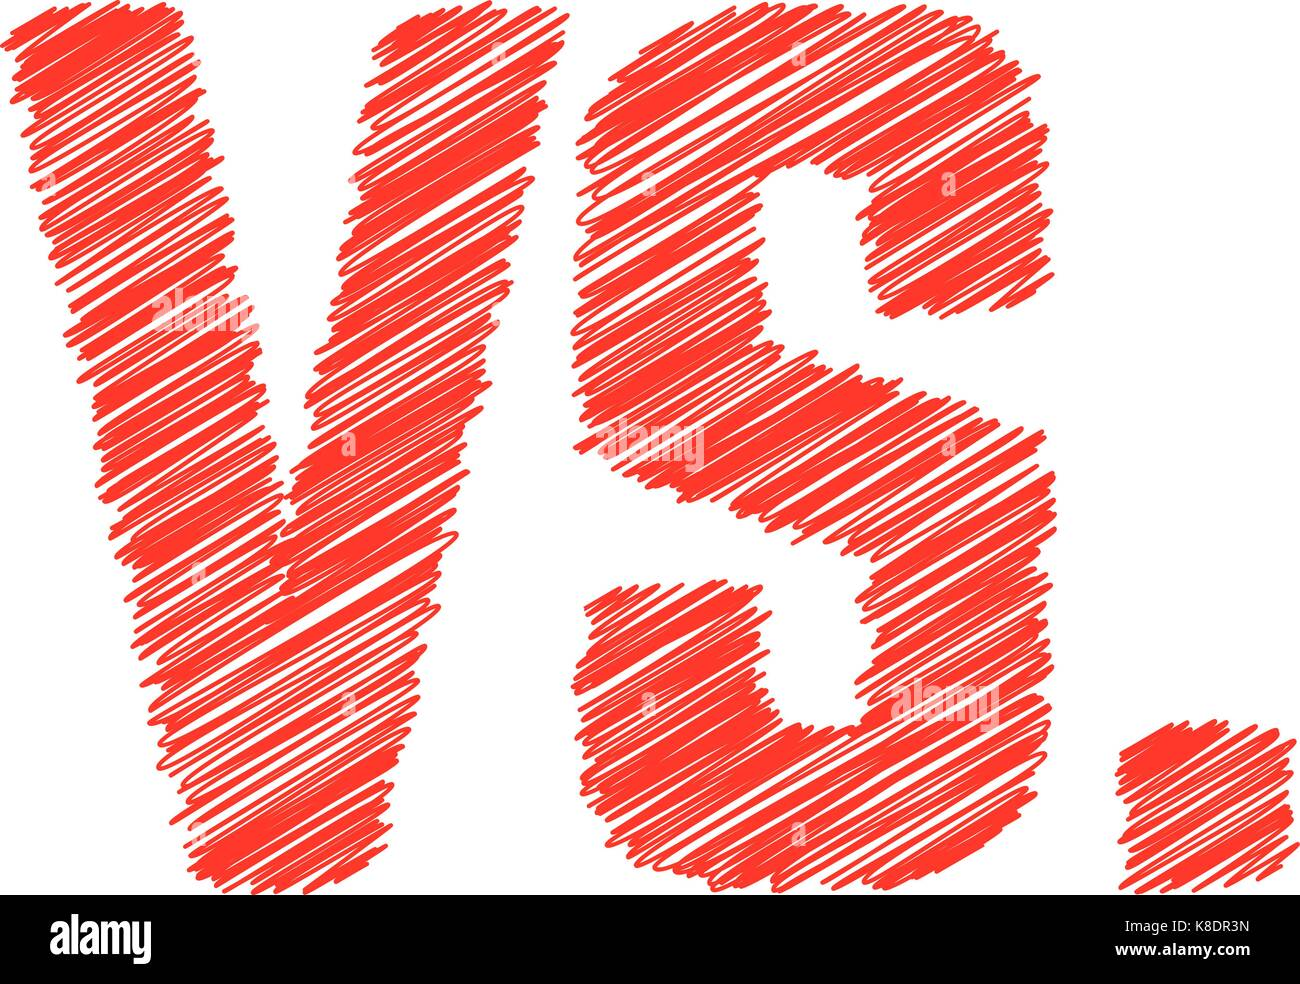 abstract red versus scribble sign - Stock Vector